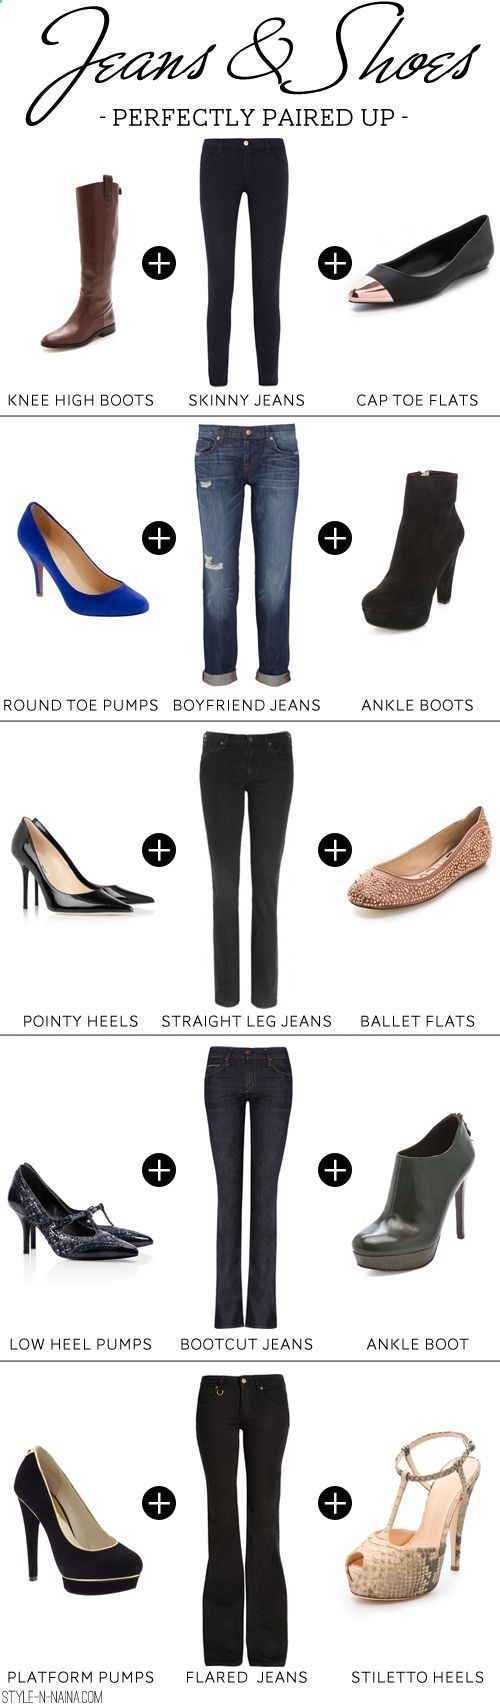 Jeans Shoes Guide - Perfectly Paired Up good to know